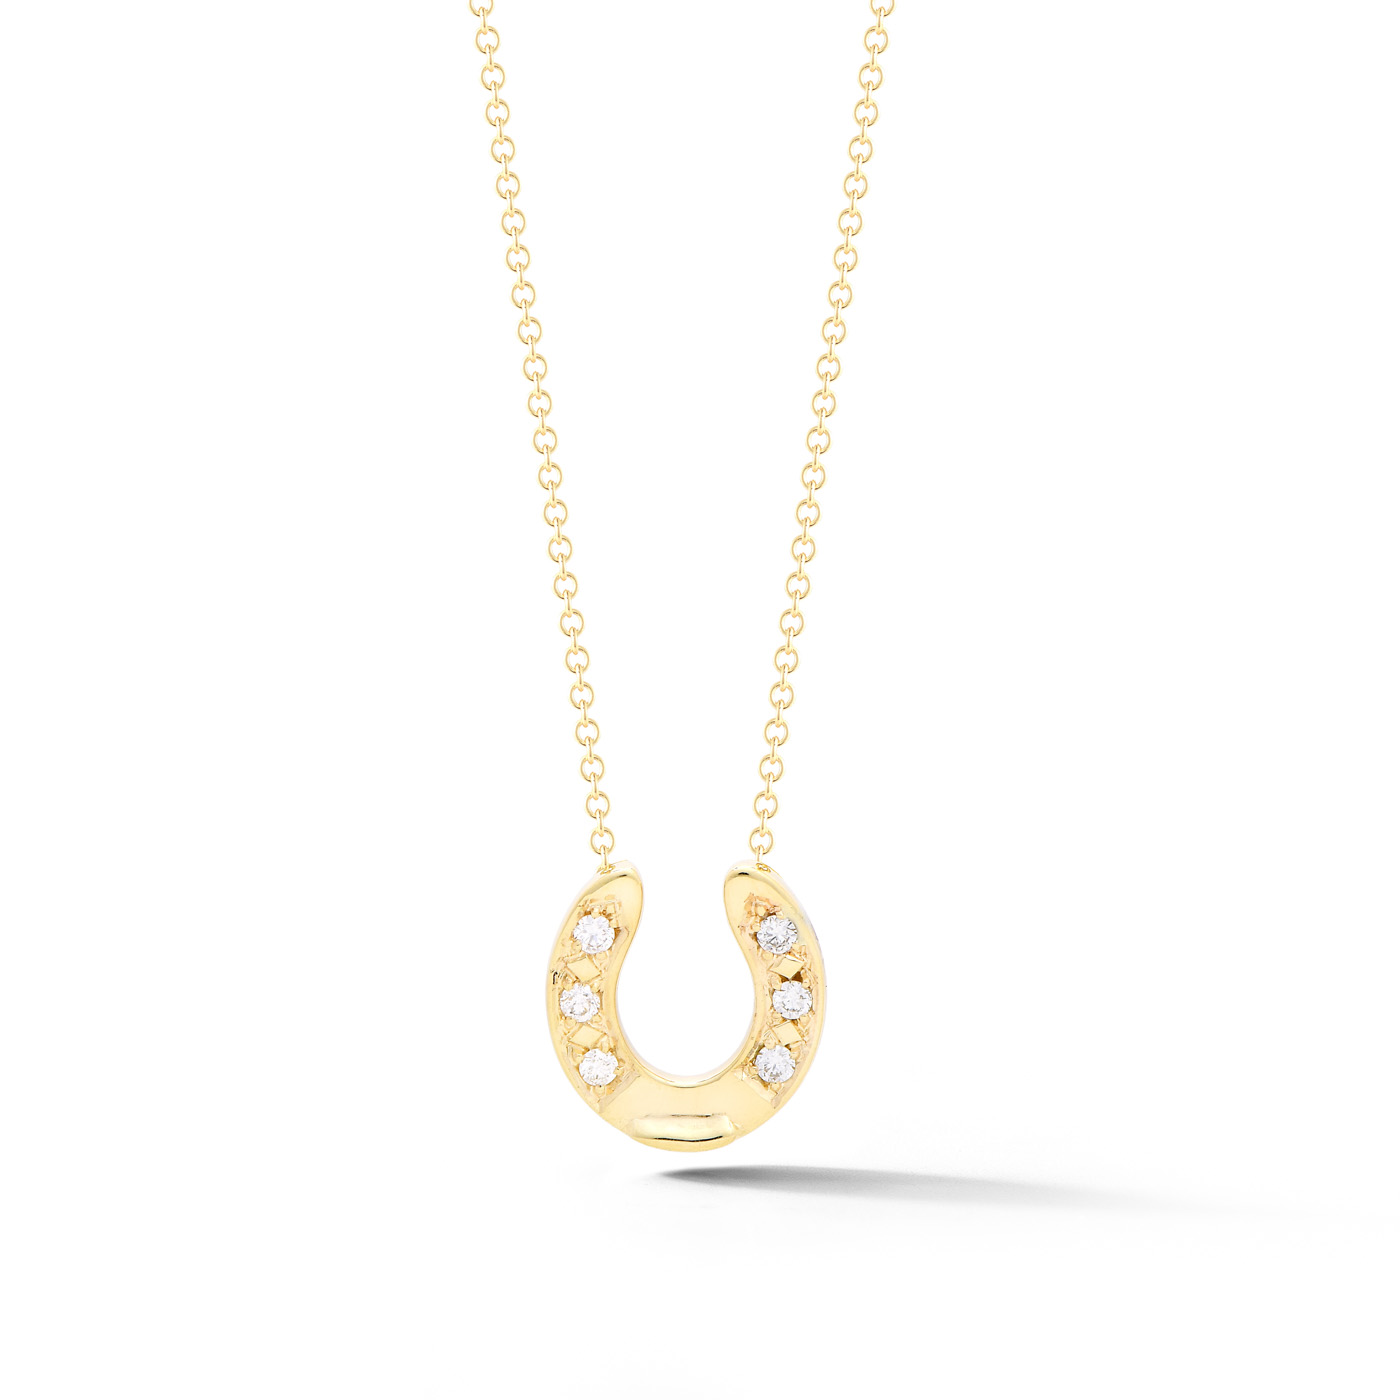 Diamond and gold horseshoe necklace